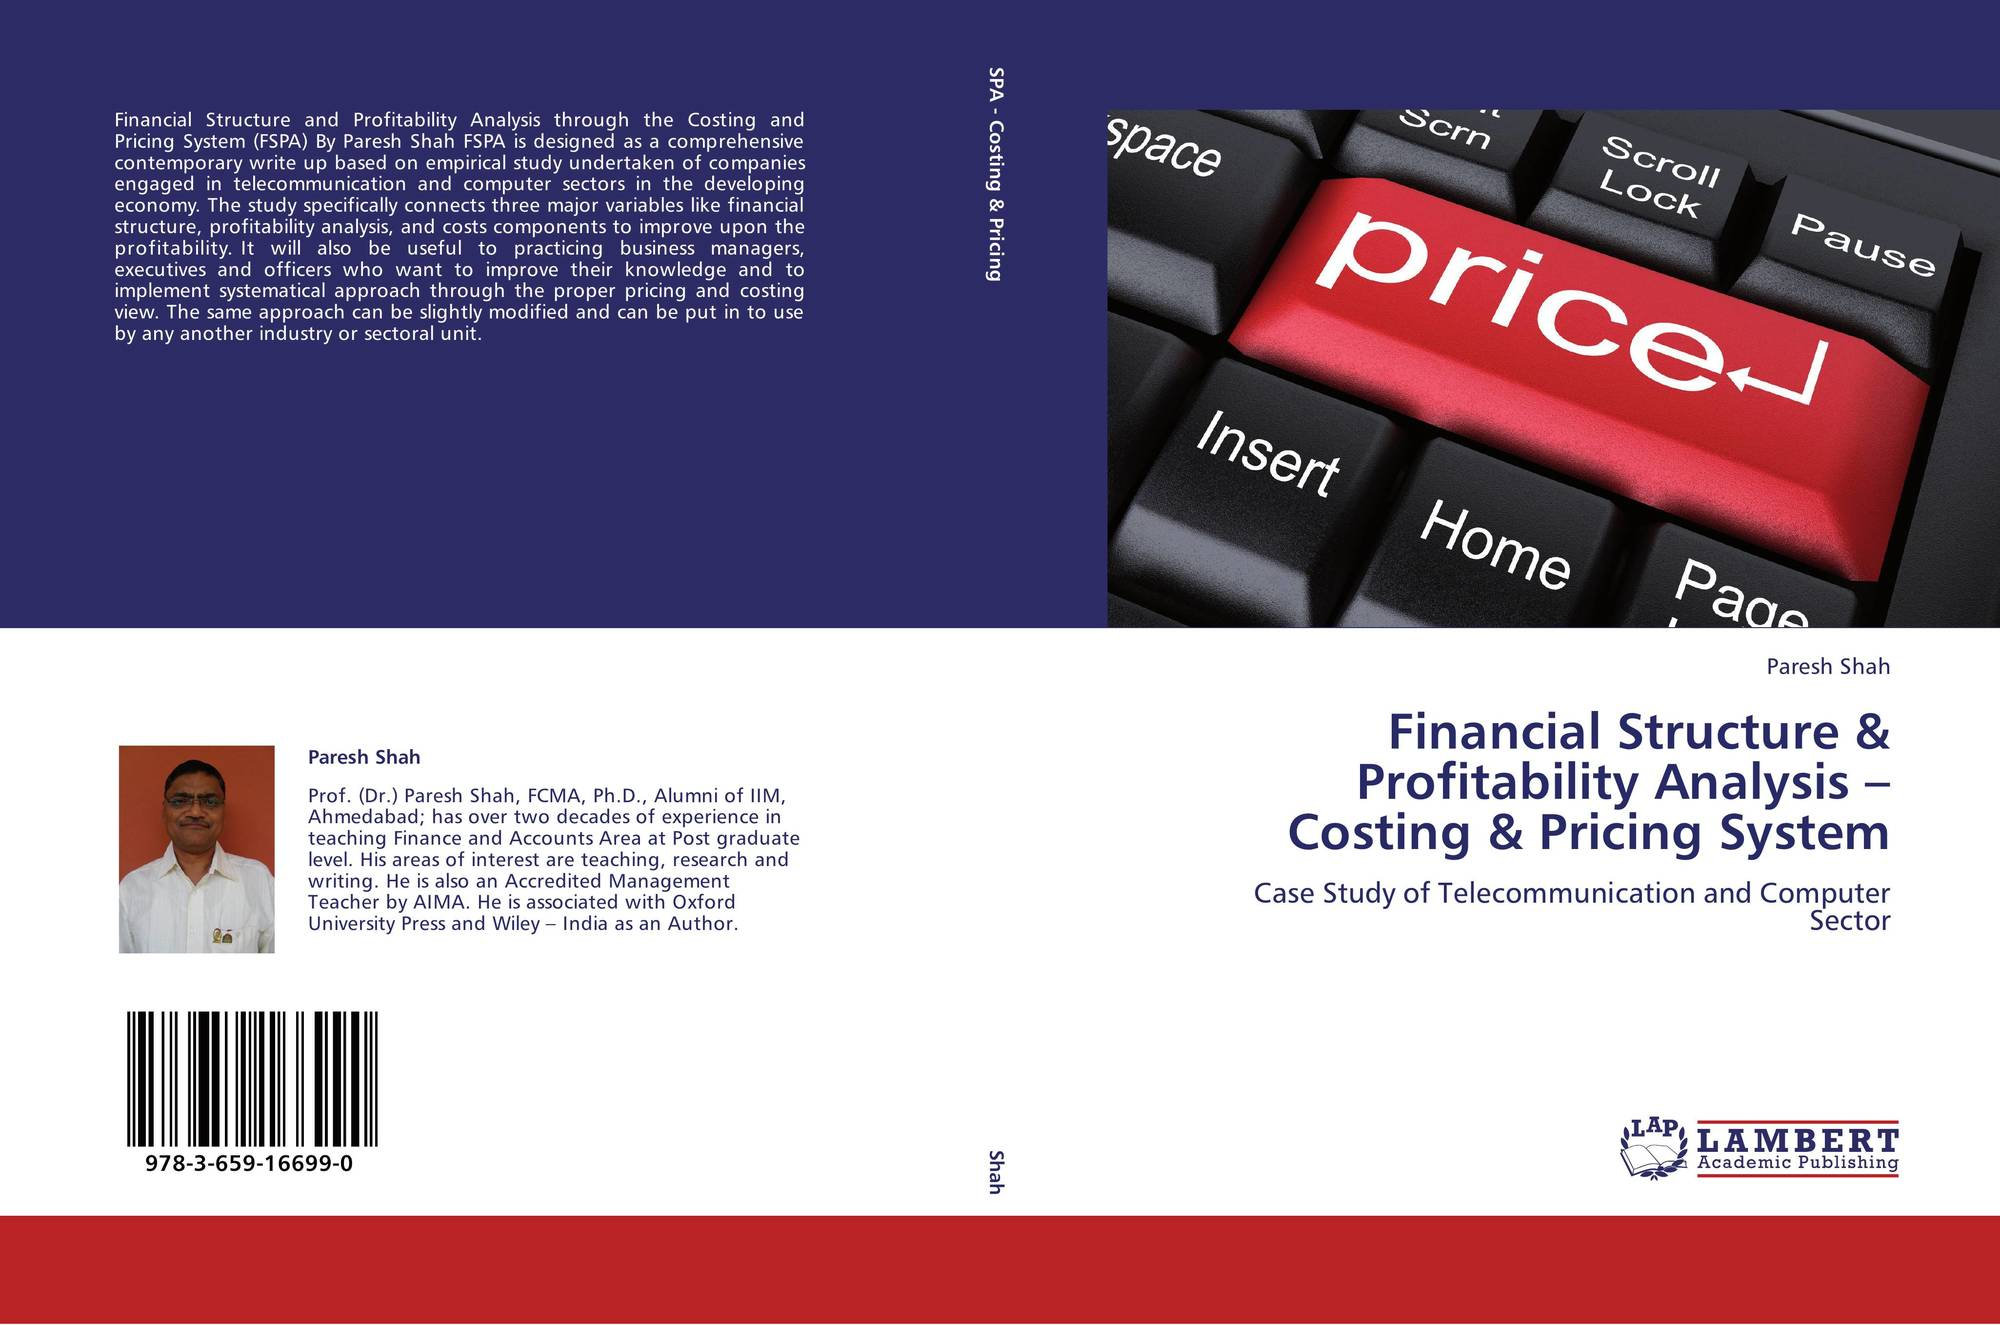 improvements to the costing and pricing systems